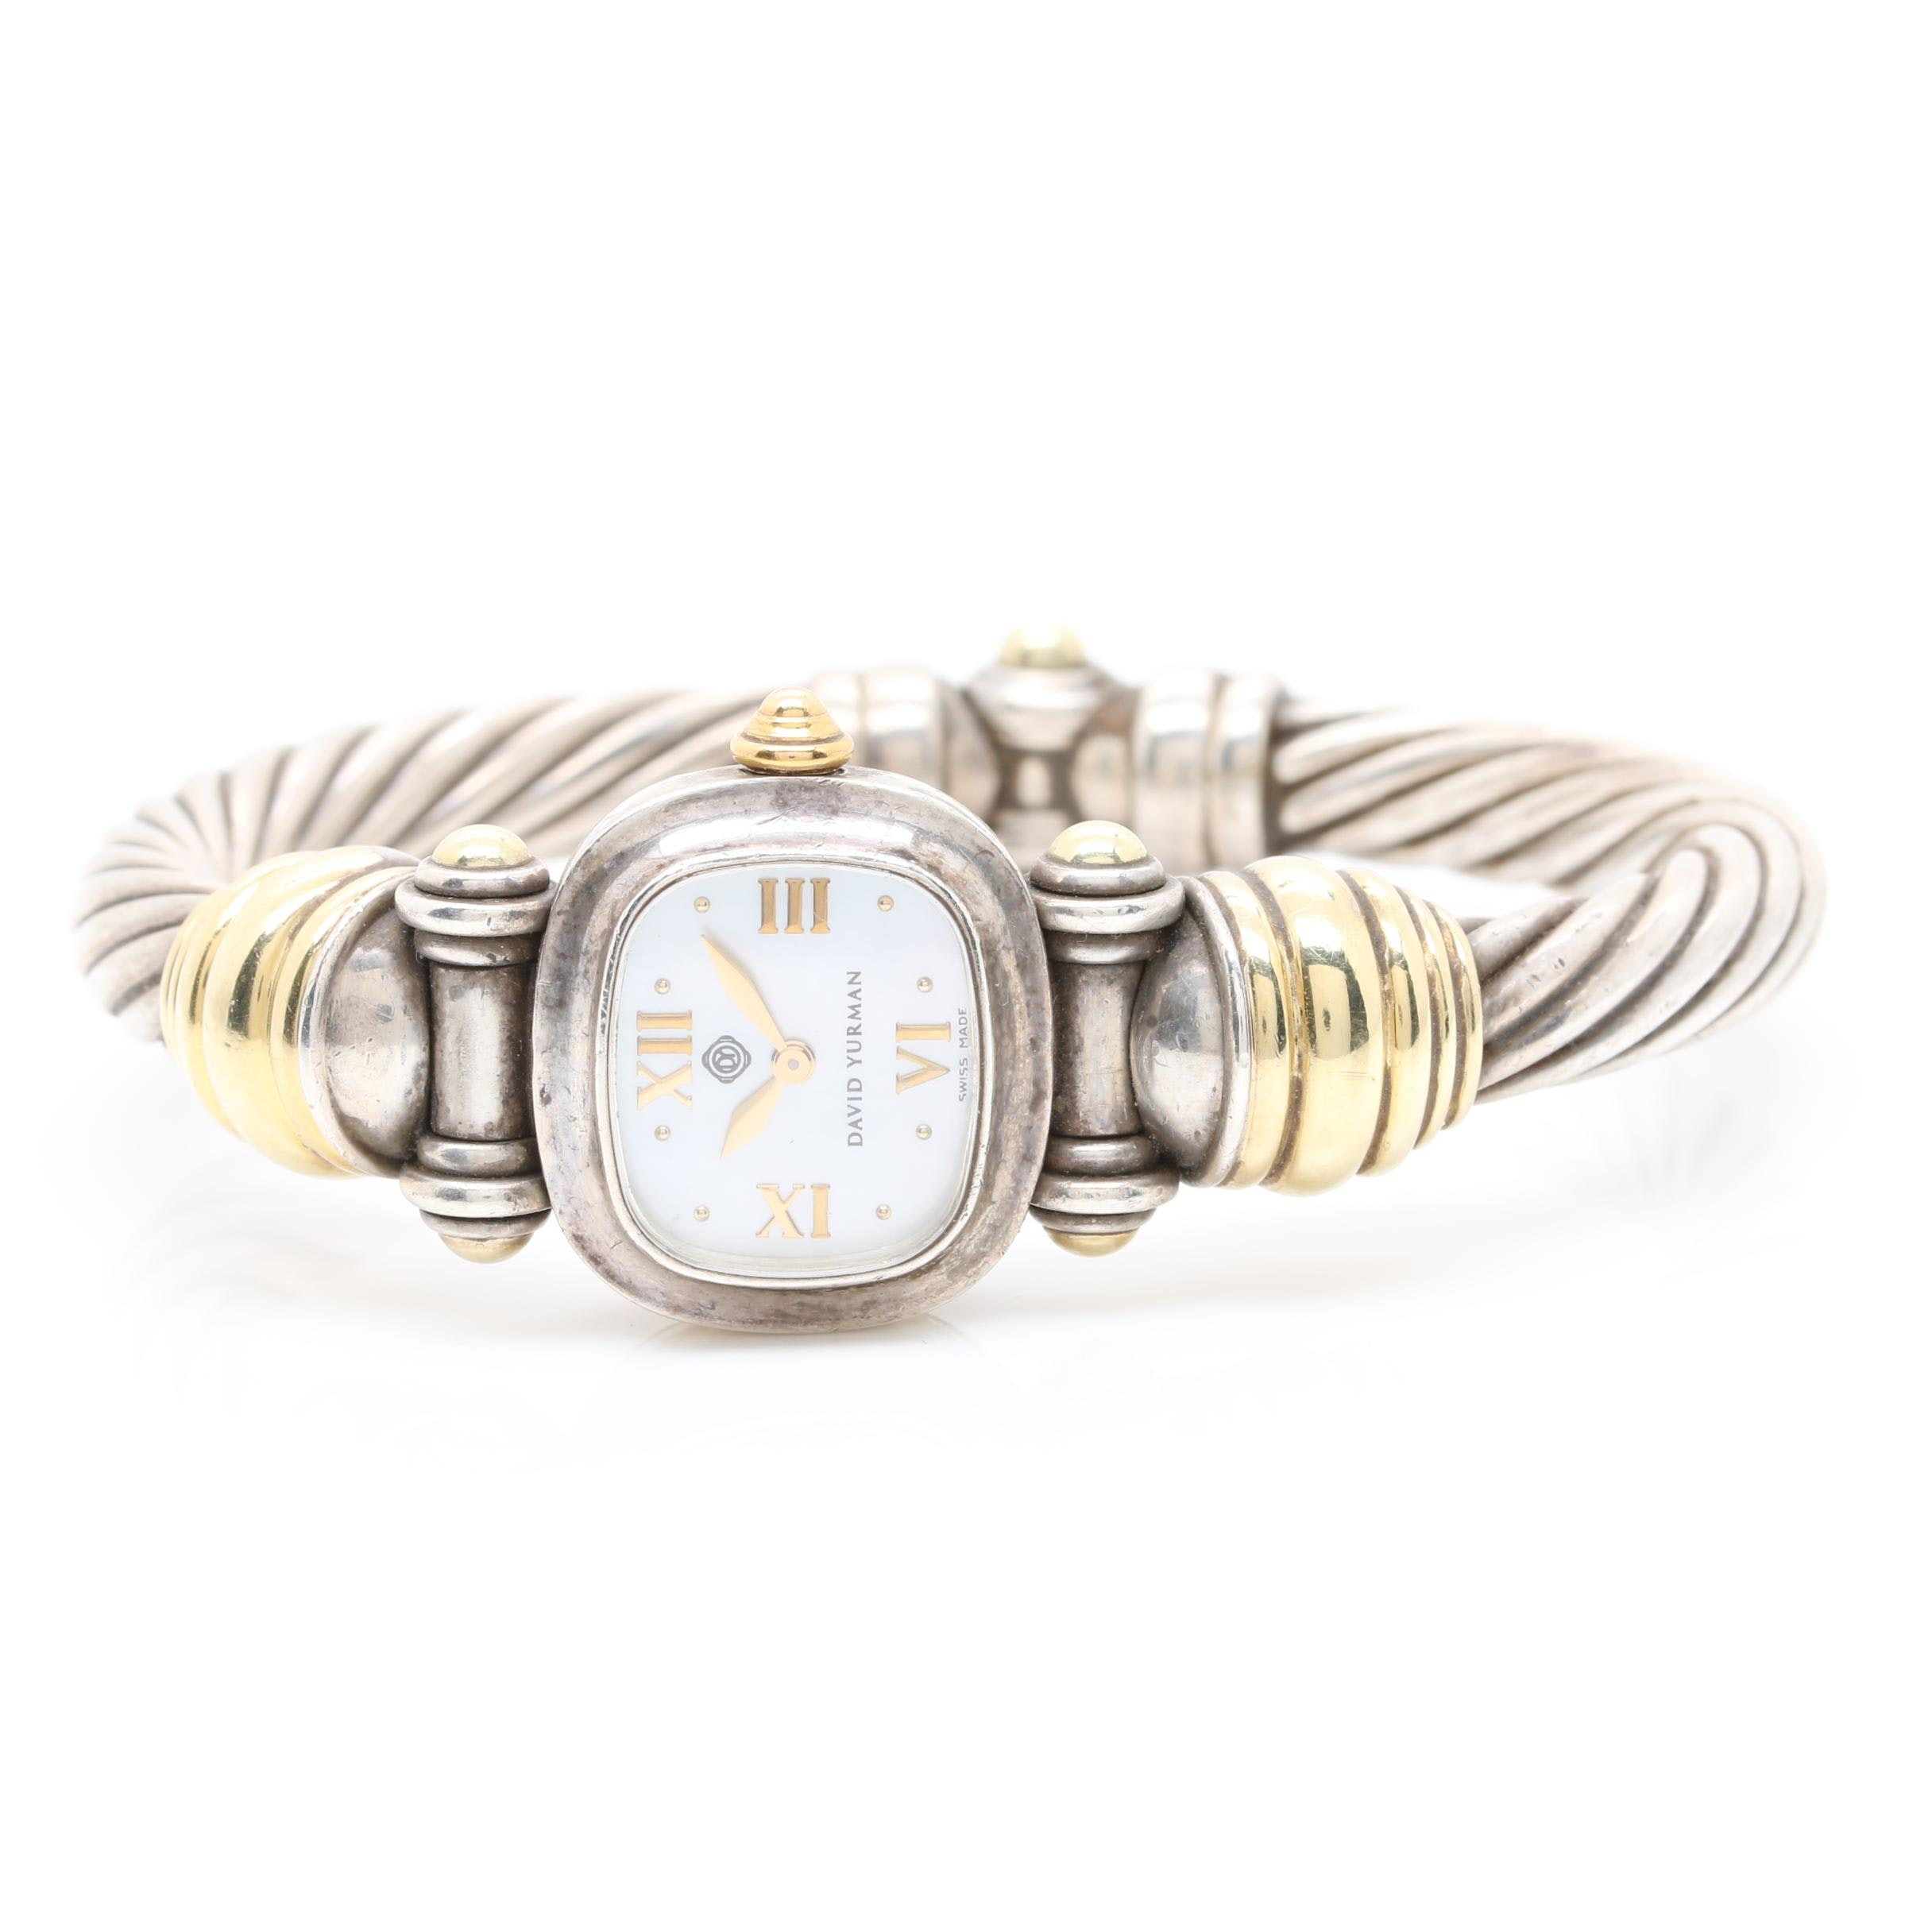 David Yurman Sterling Silver Wristwatch with 14K Yellow Gold Accents